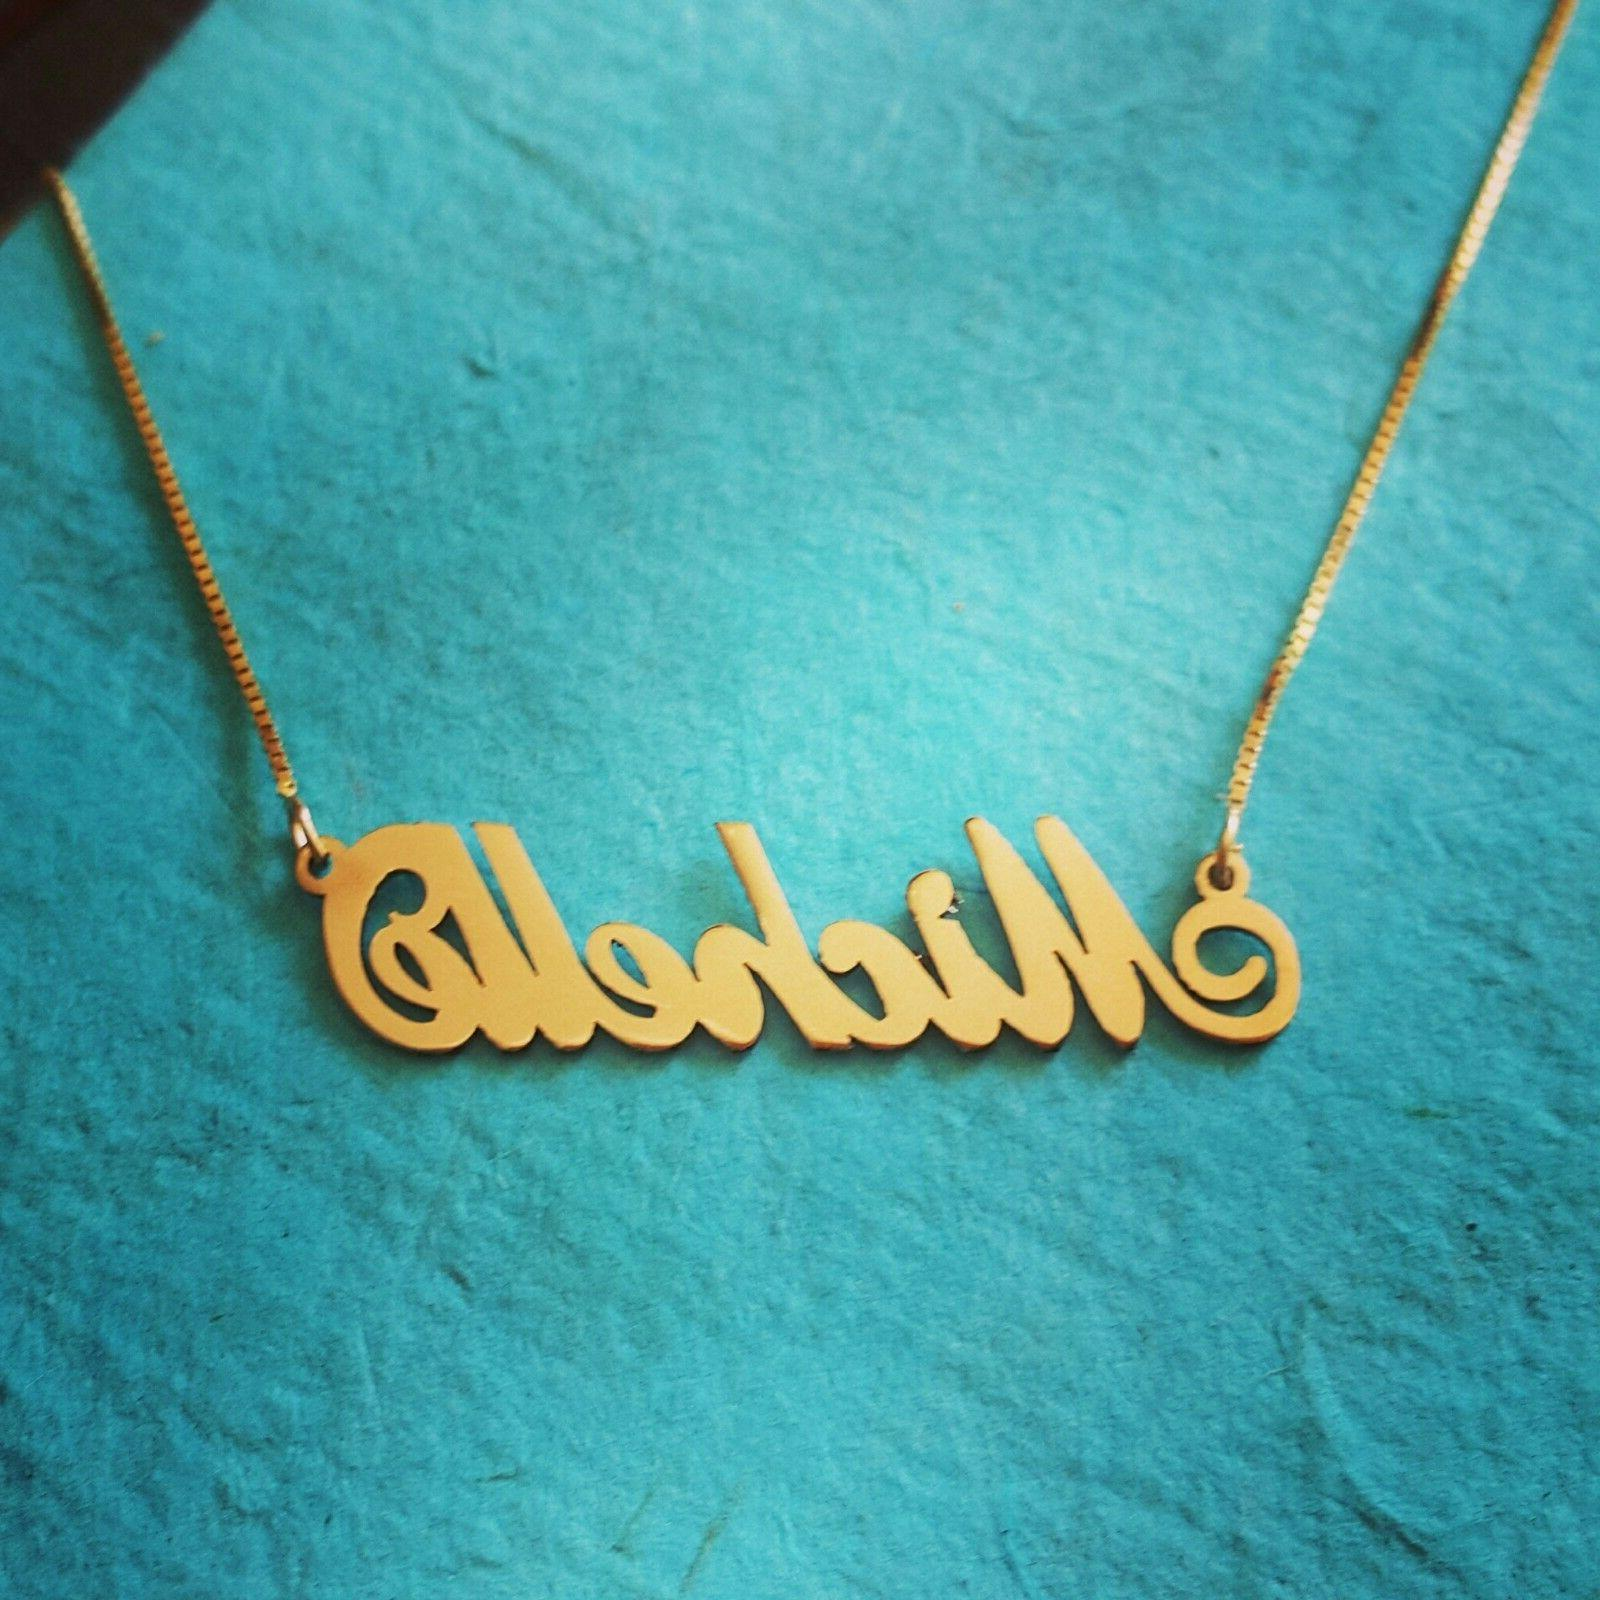 14 Gold Necklace Real necklace